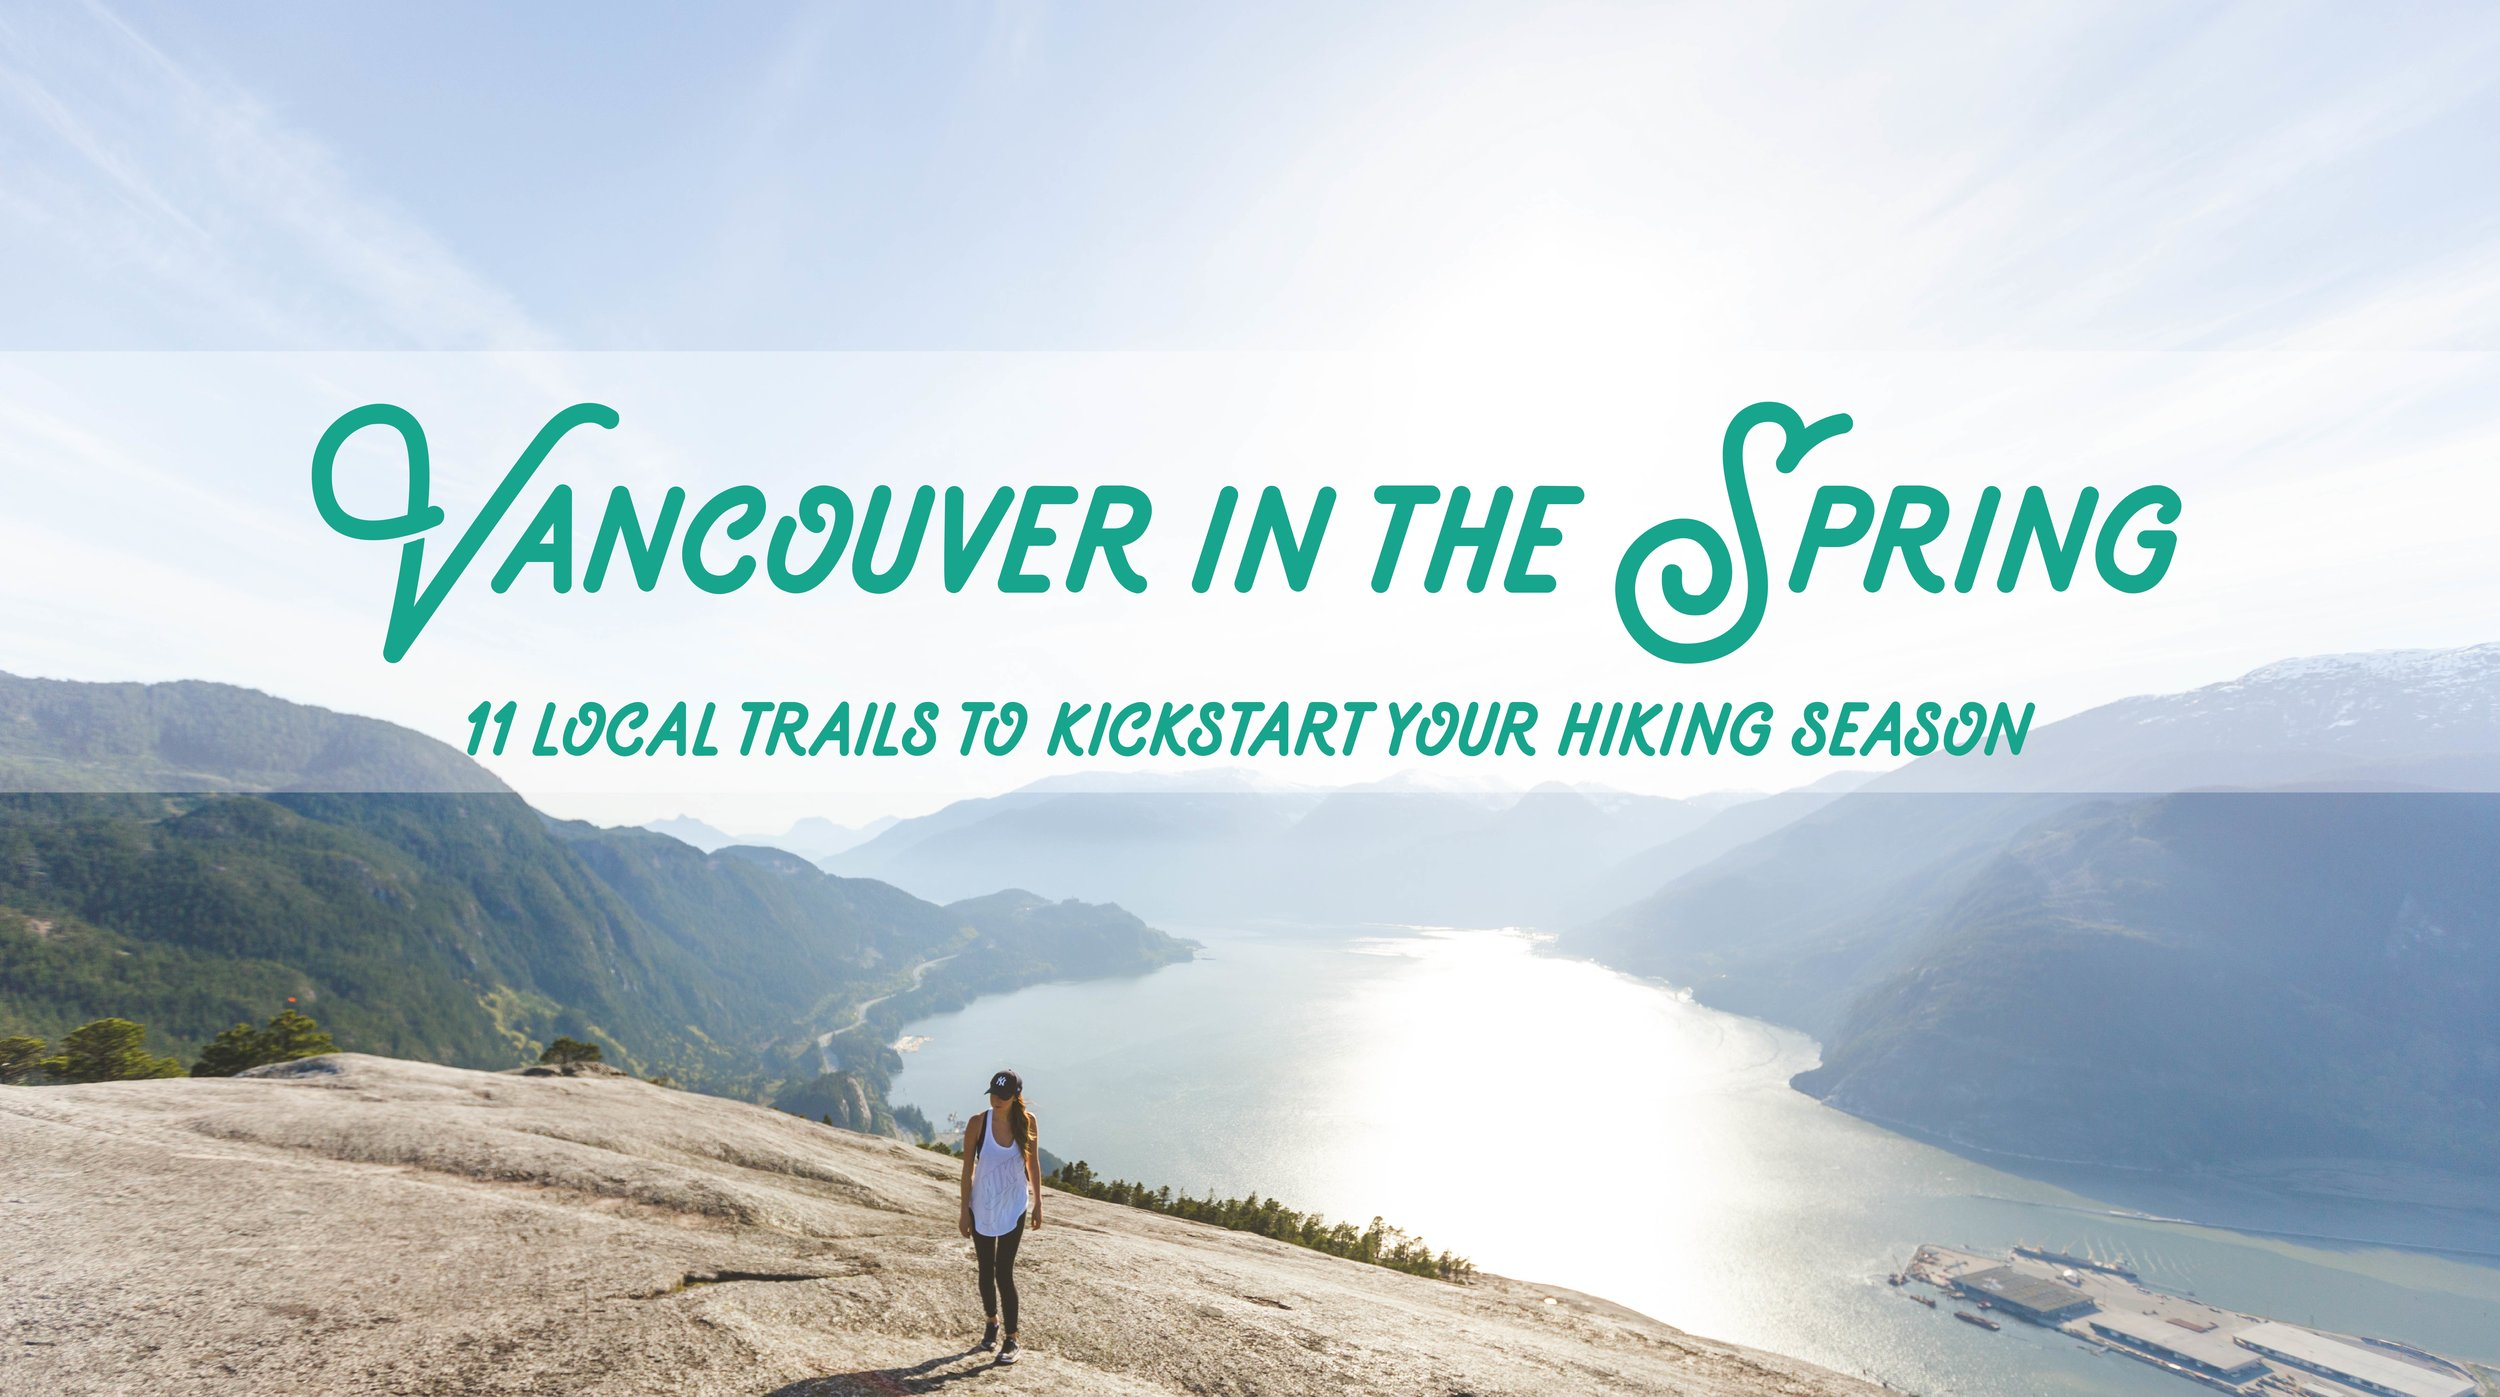 Vancouver In The Spring 11 Local Trails To Kickstart Your